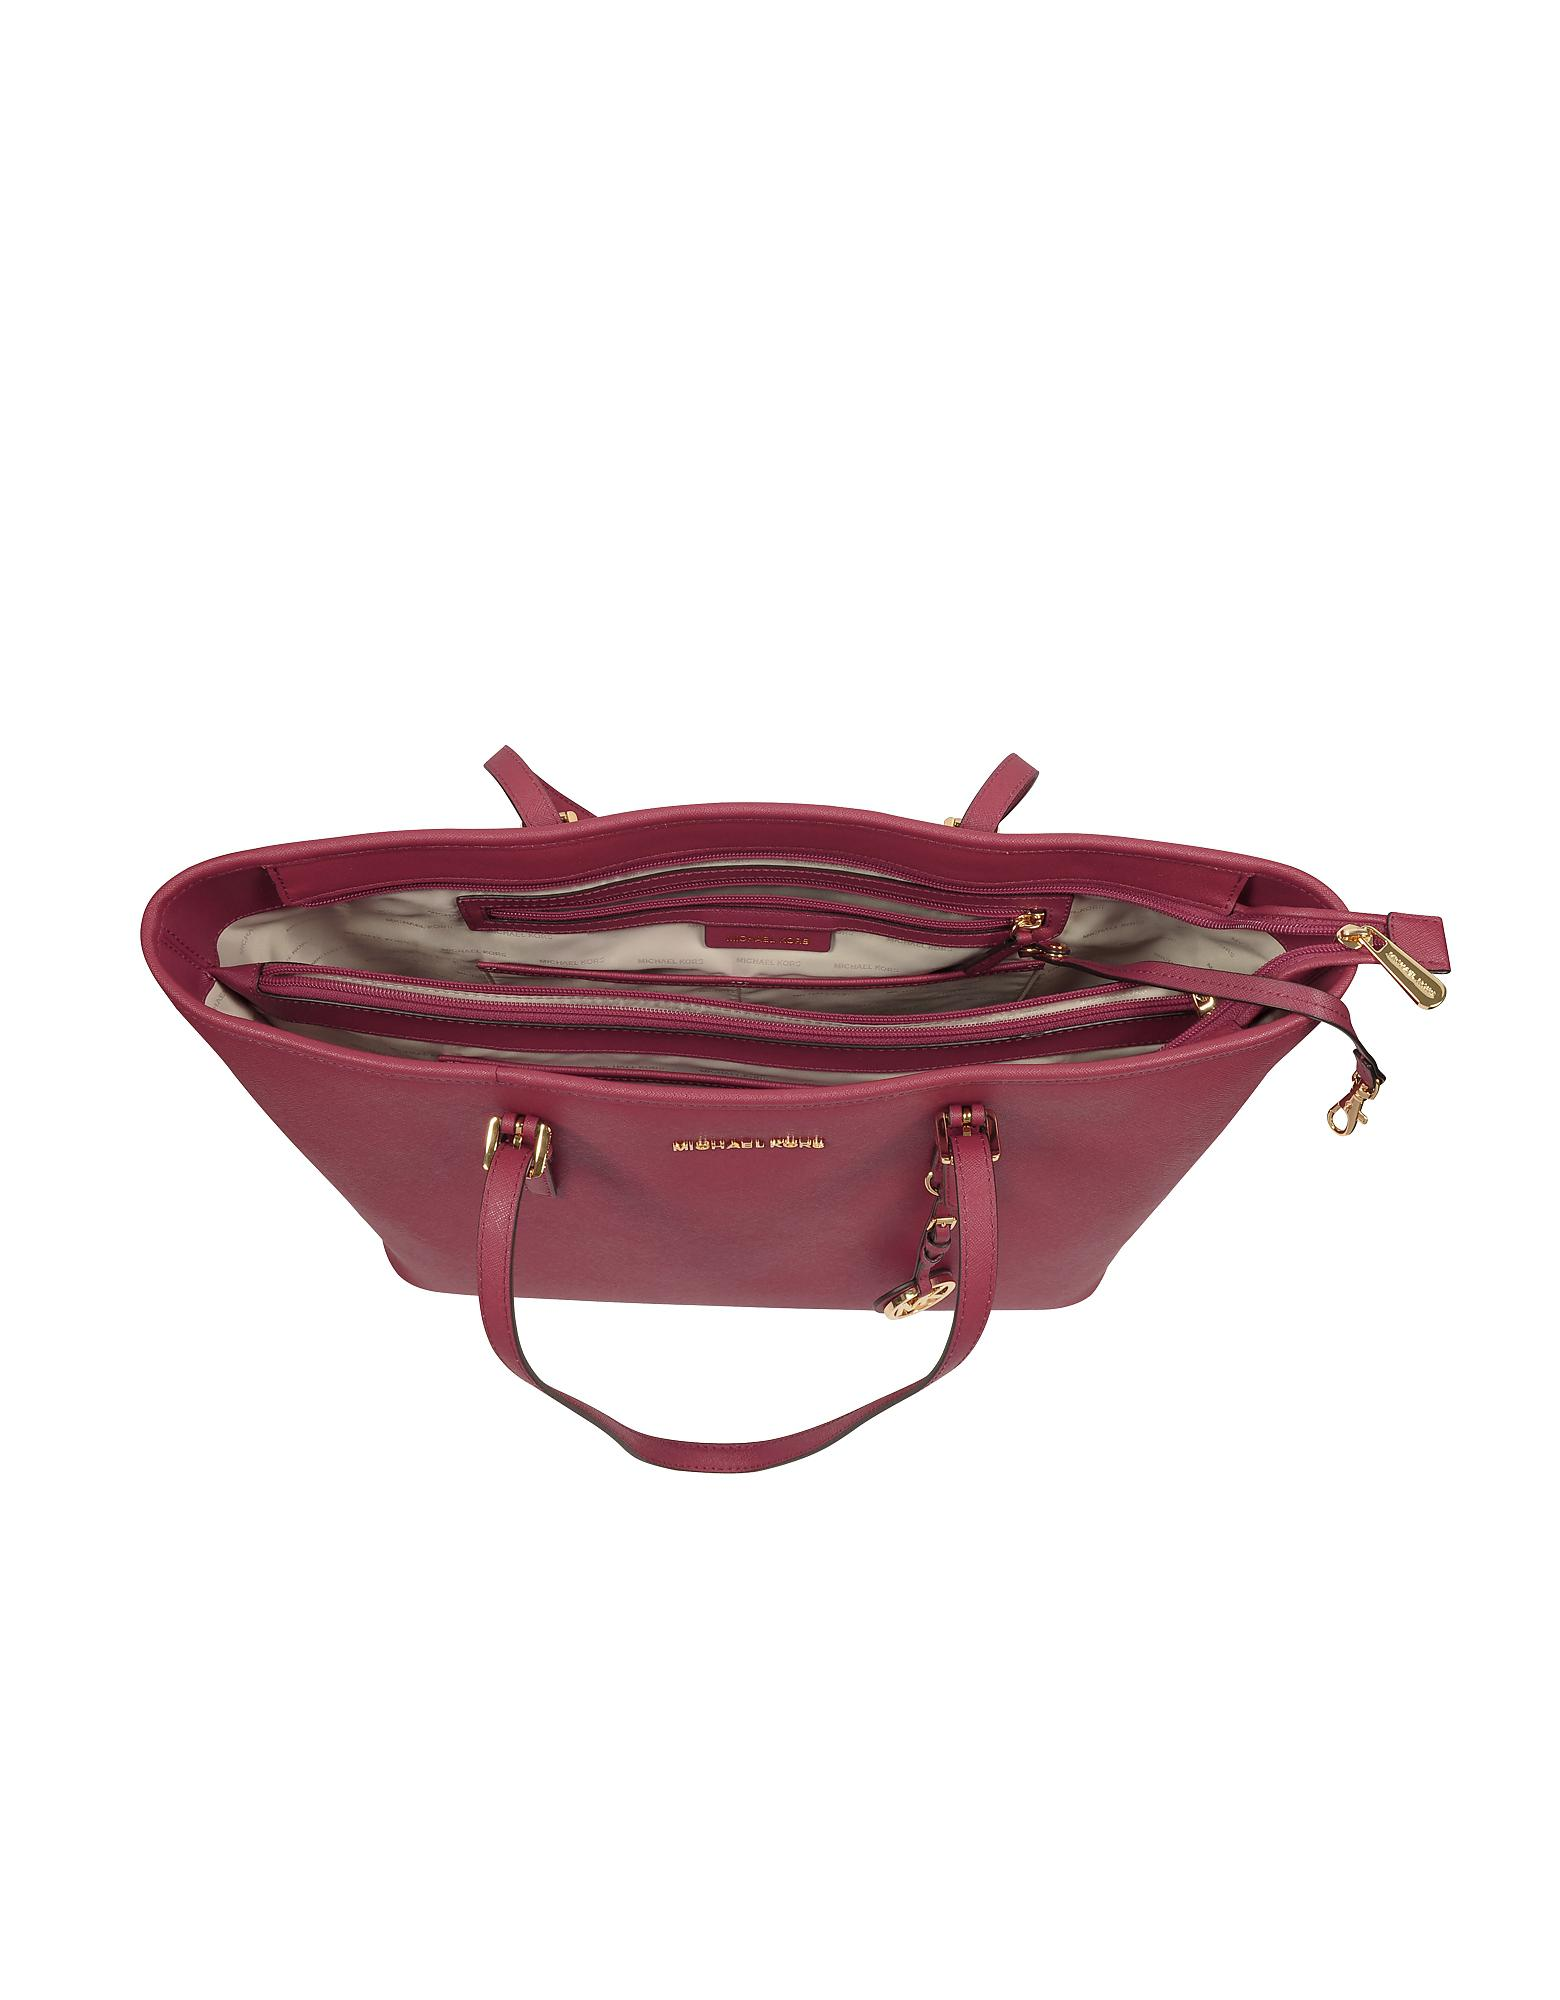 6350bef202 ... bag mulberry f0409 8cf89 discount michael kors jet set travel medium  mulberry saffiano leather top zip 87921 9d0e6 cheap totes womens bags ...